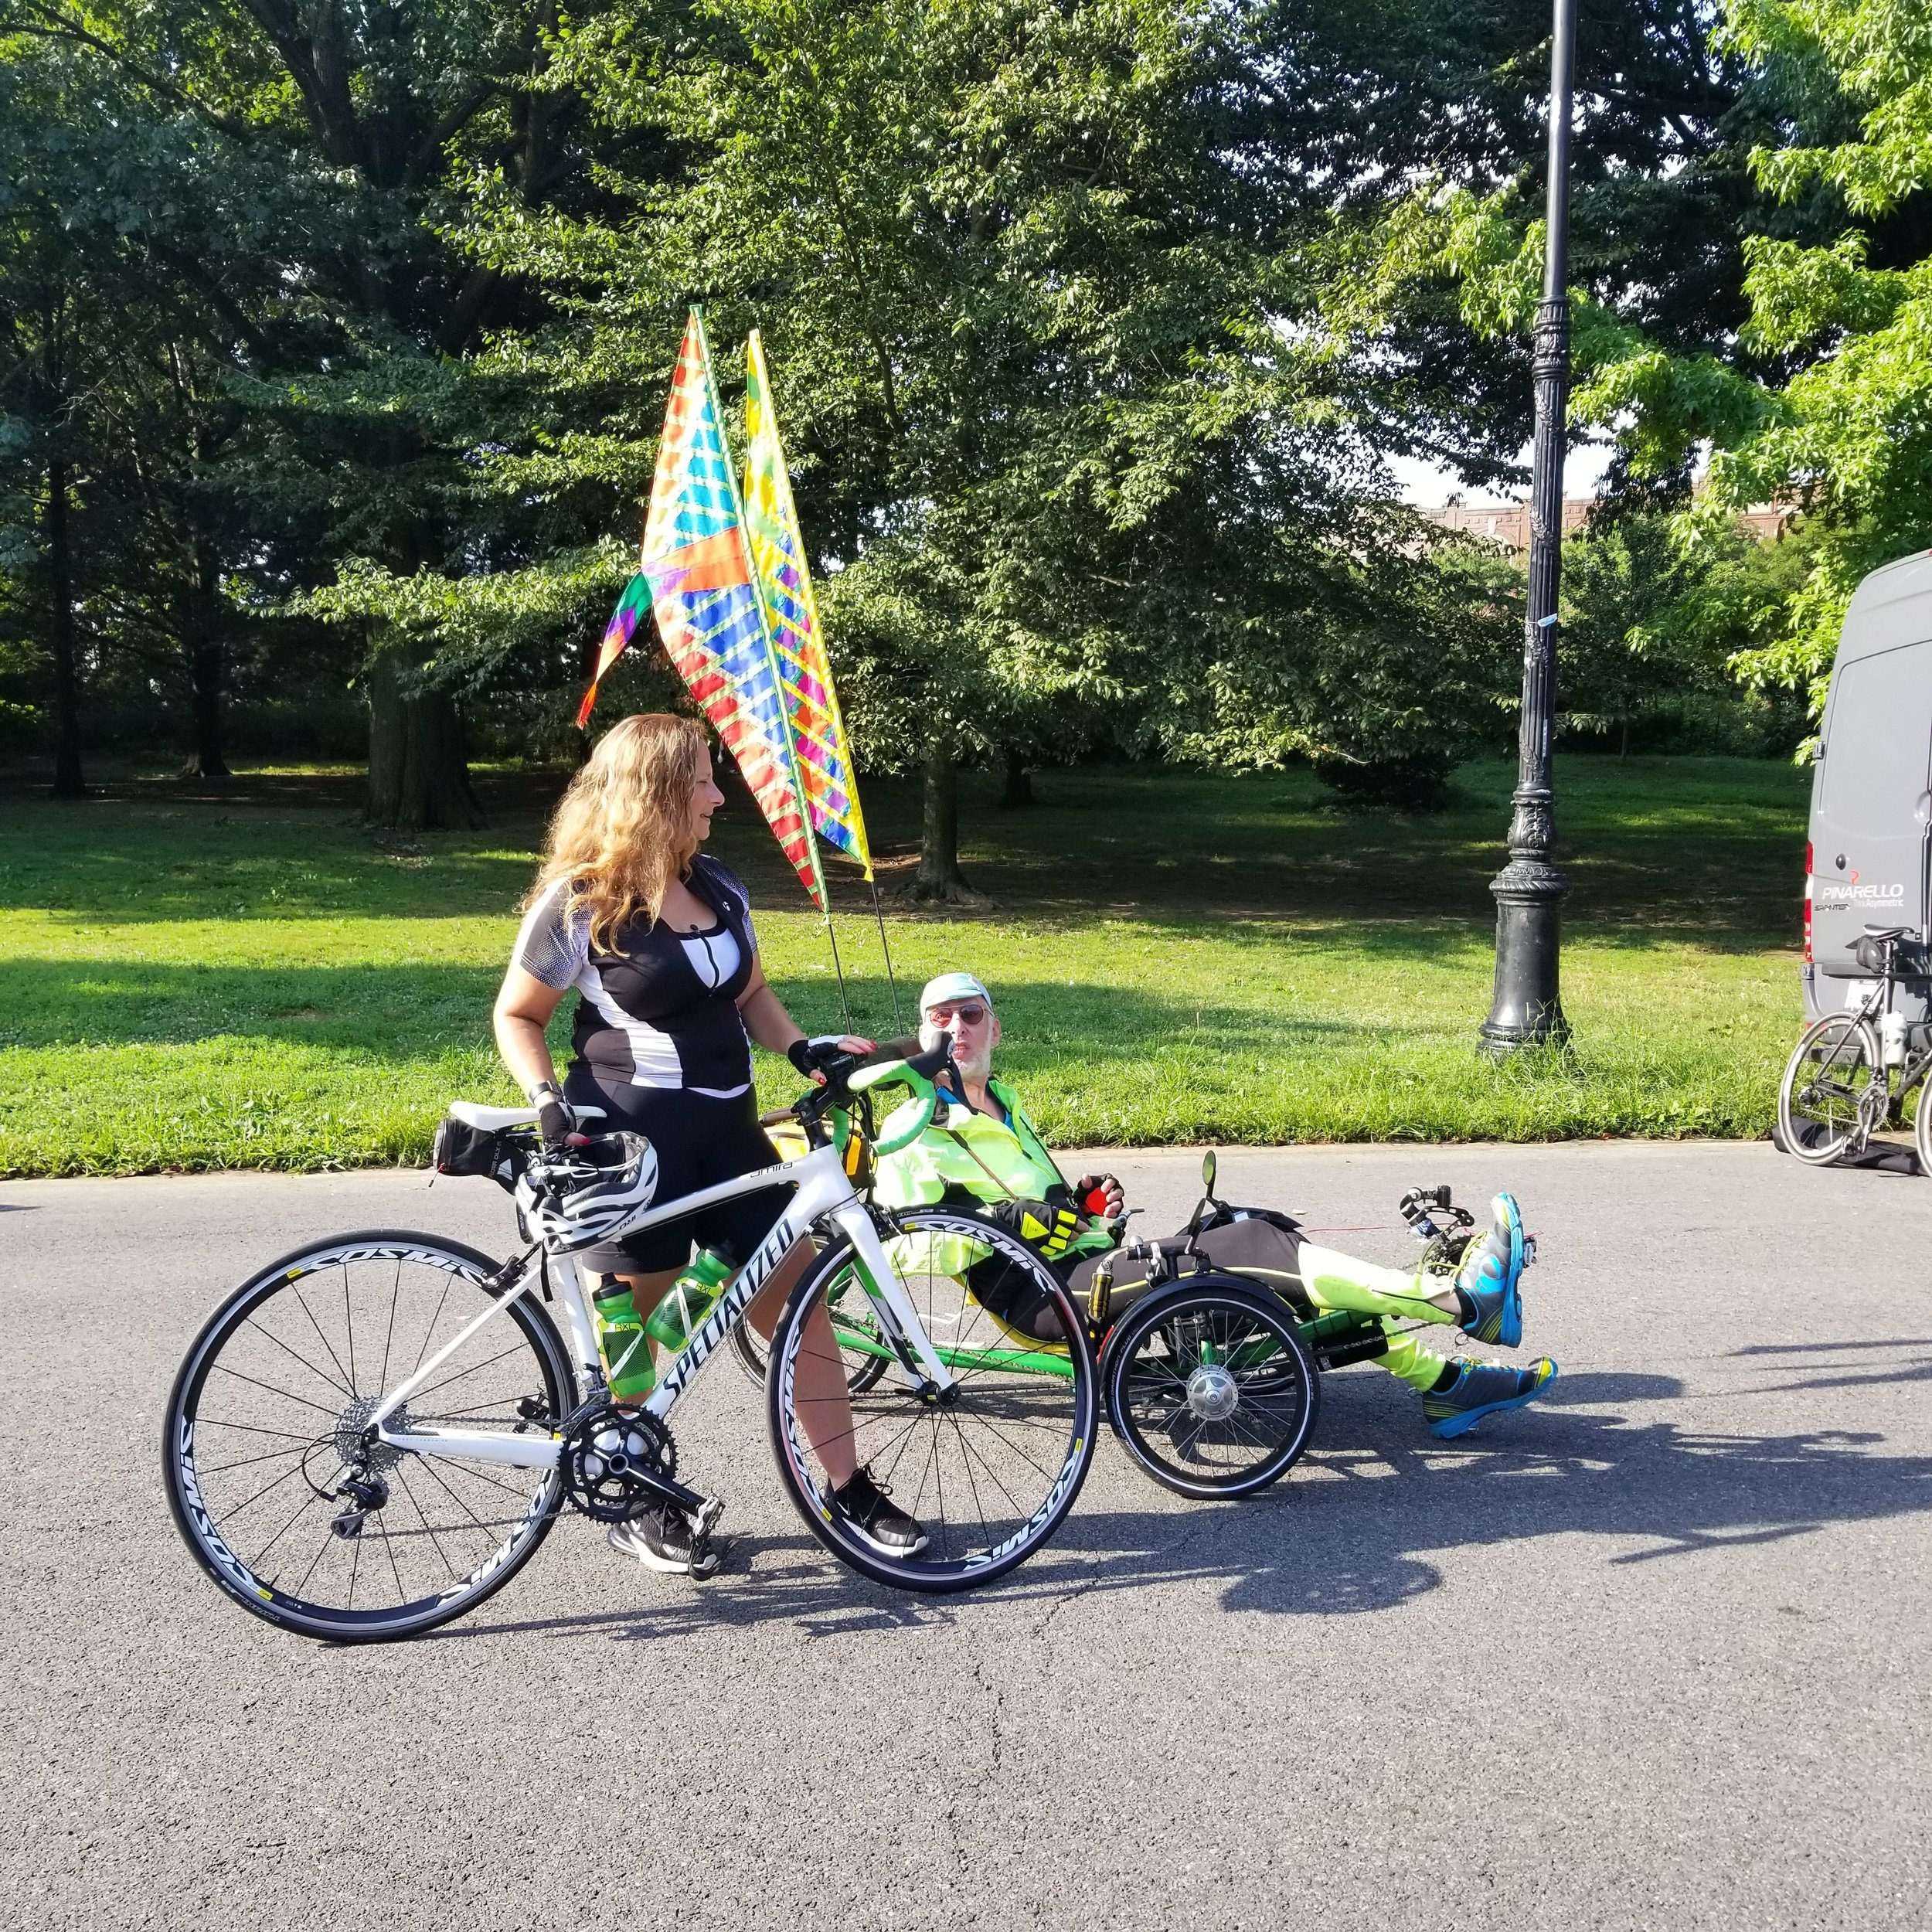 What I have learned about recumbent trikers, is they never miss an opportunity to educate pedestrians and other cyclists